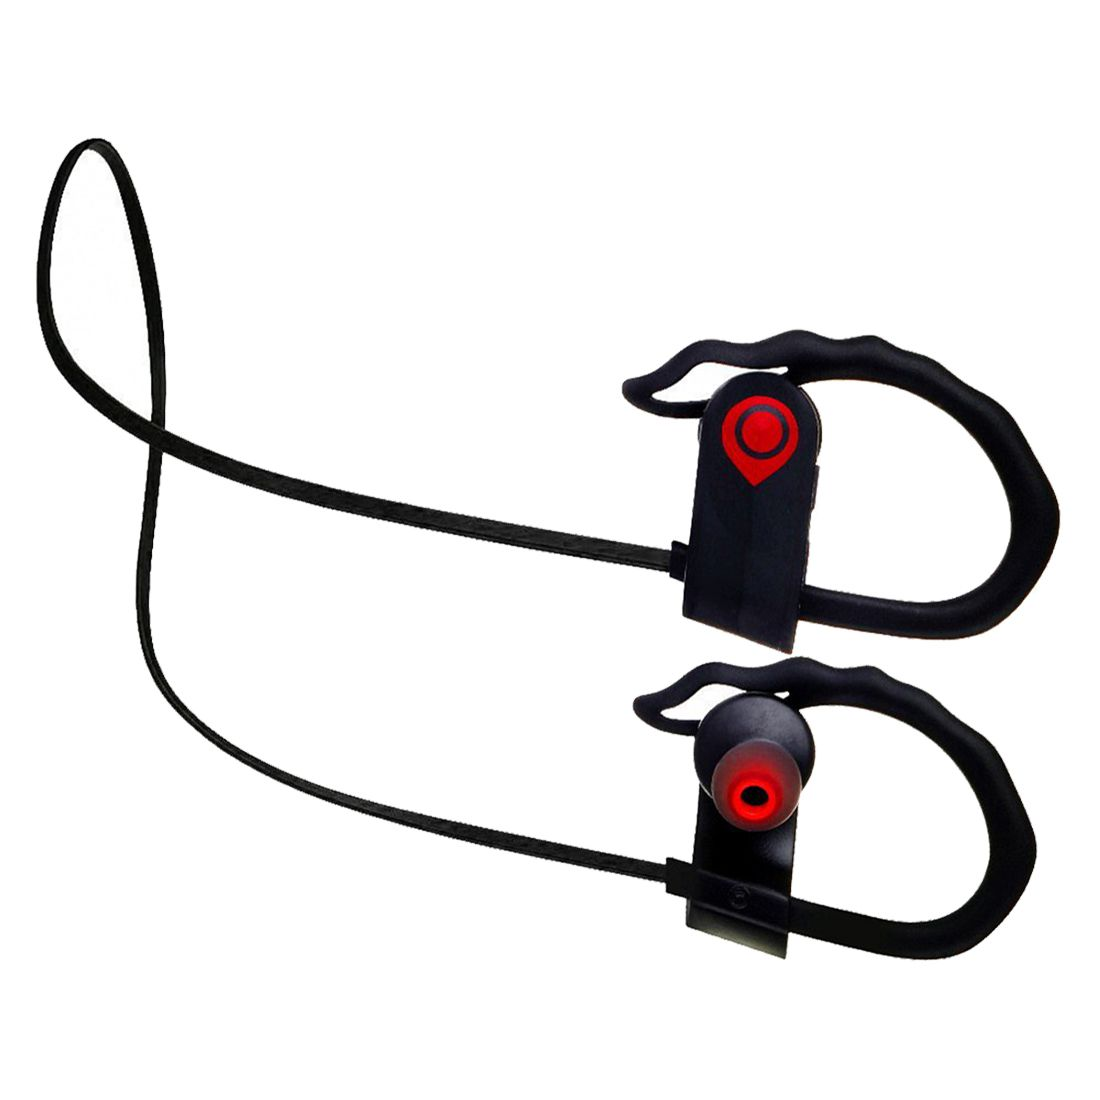 Bluetooth Headphones, Wireless Headphones Sports In-Ear Earbuds with Built-in Mic Wireless Earbuds Stereo Sound Noise Cancelli<br>